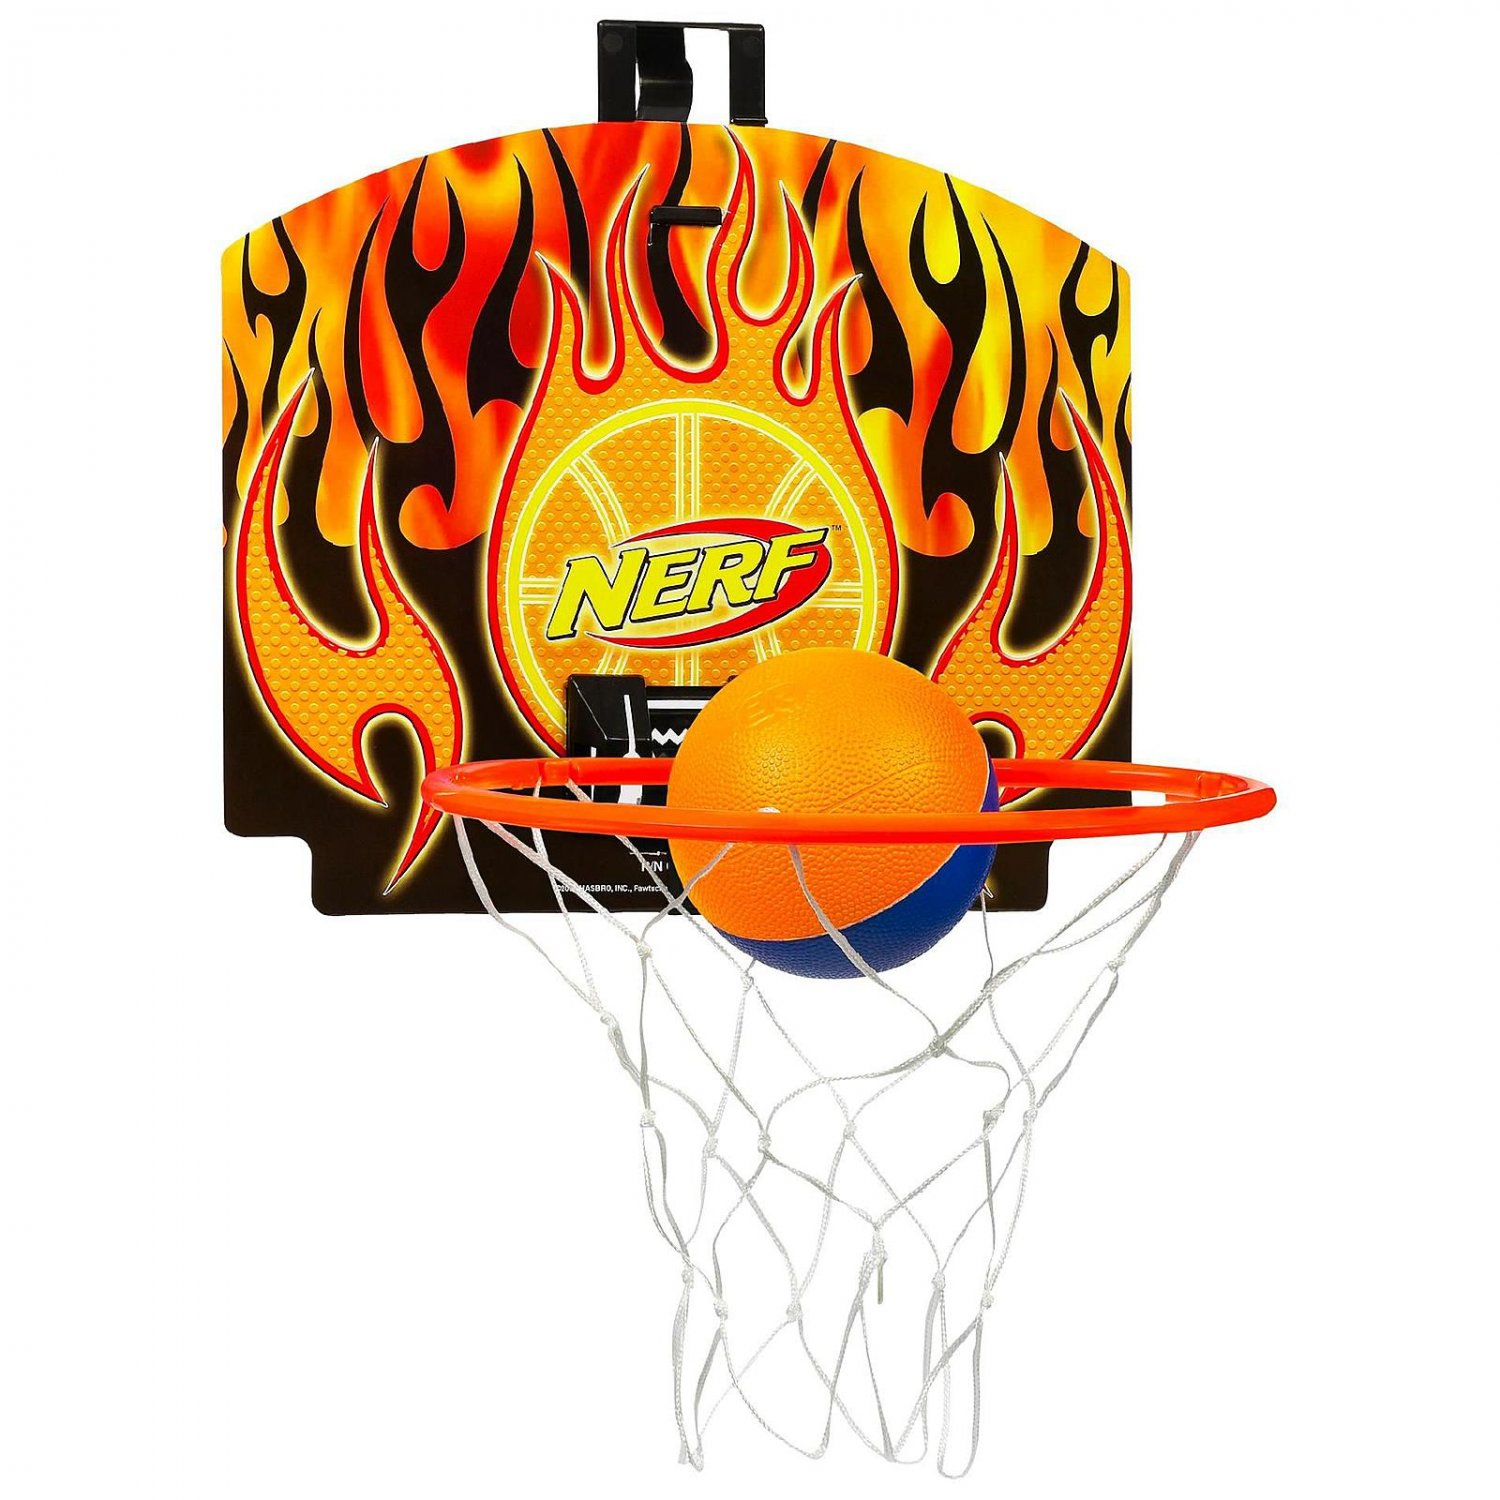 Nerf Nerfoop Classic Indoor Basketball Hoop Ball Heat Boys Gift Miami Toy Age 3+